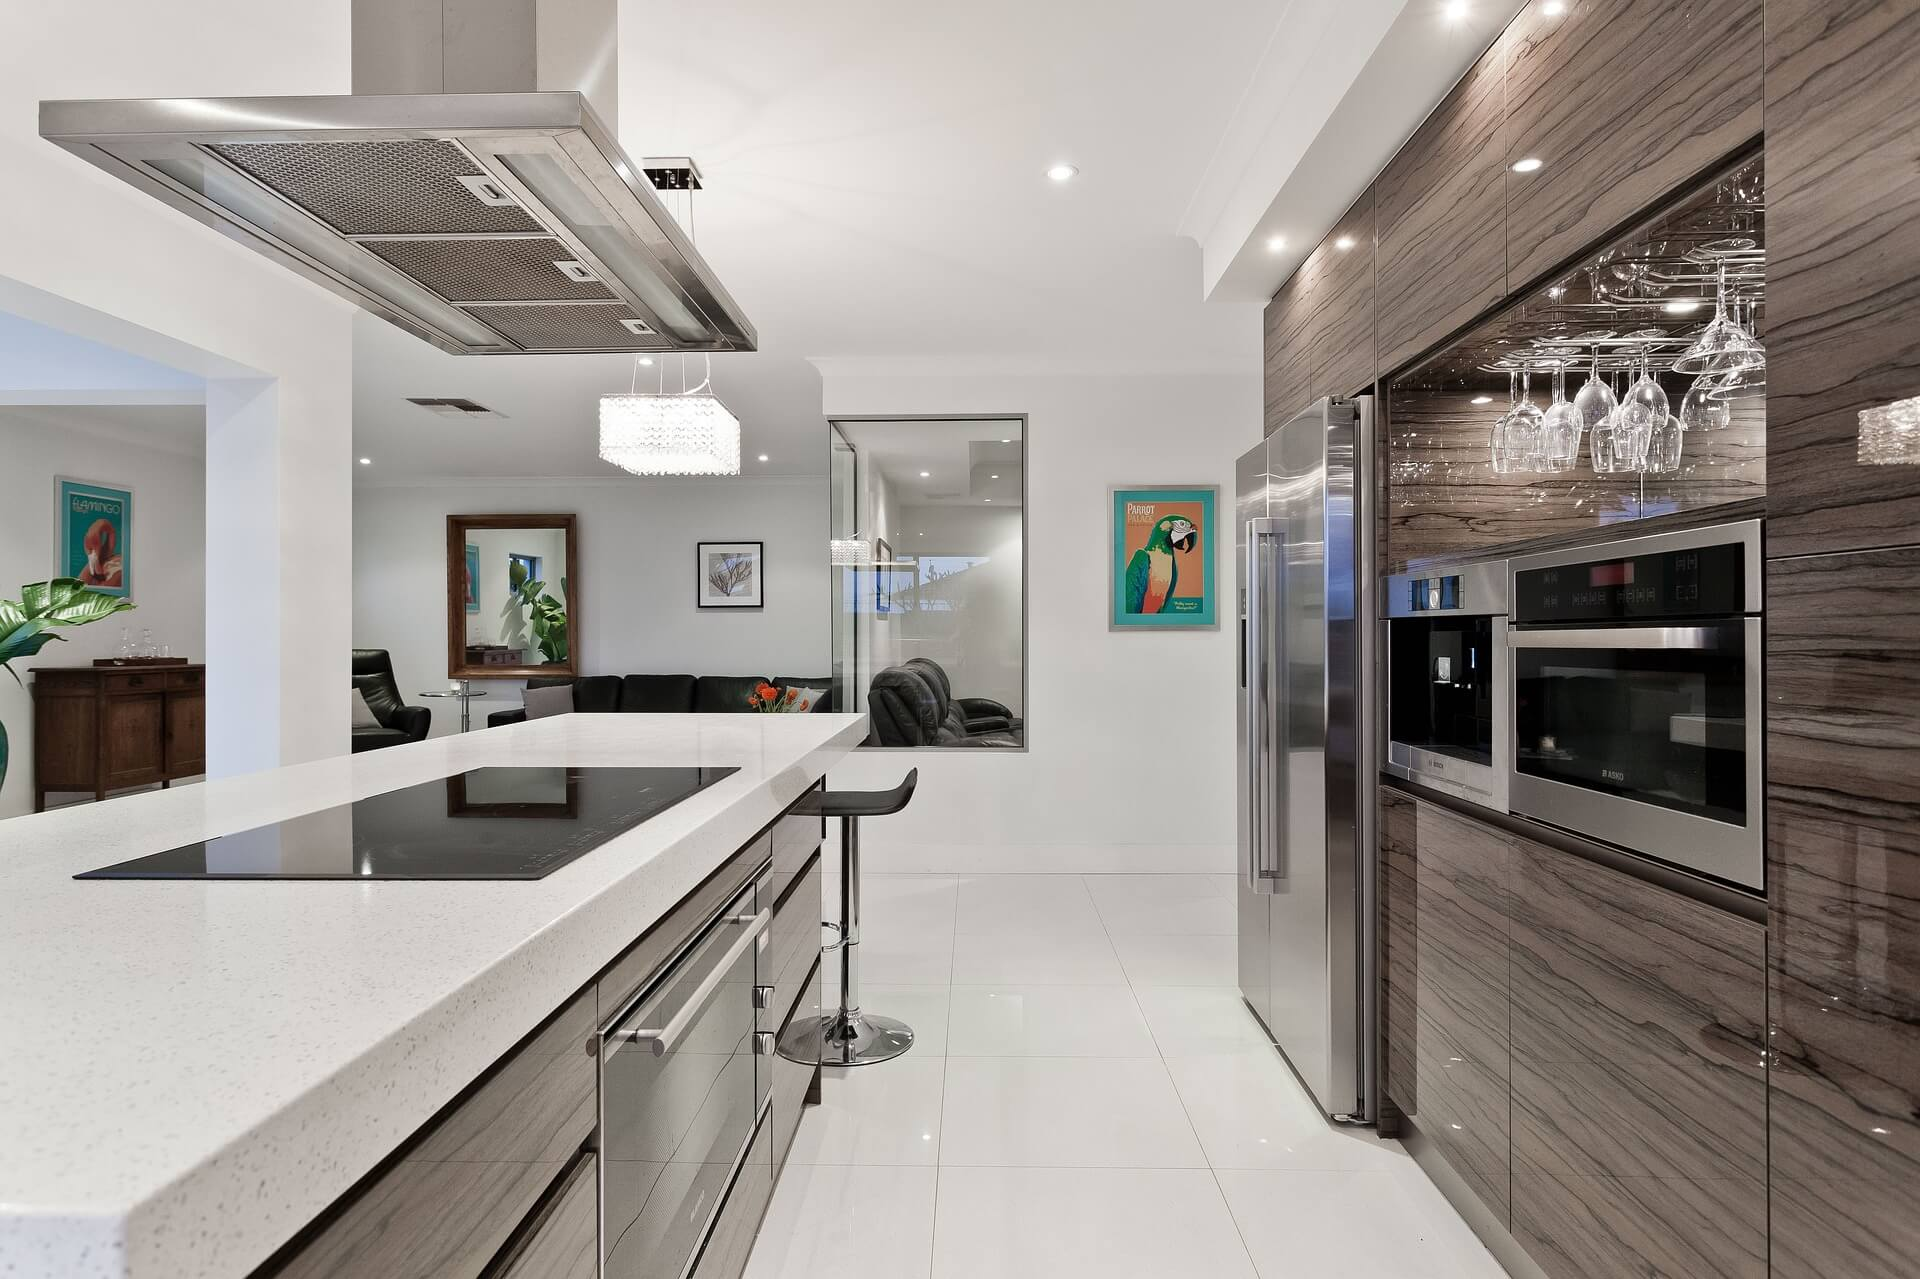 Kitchen with LEDs